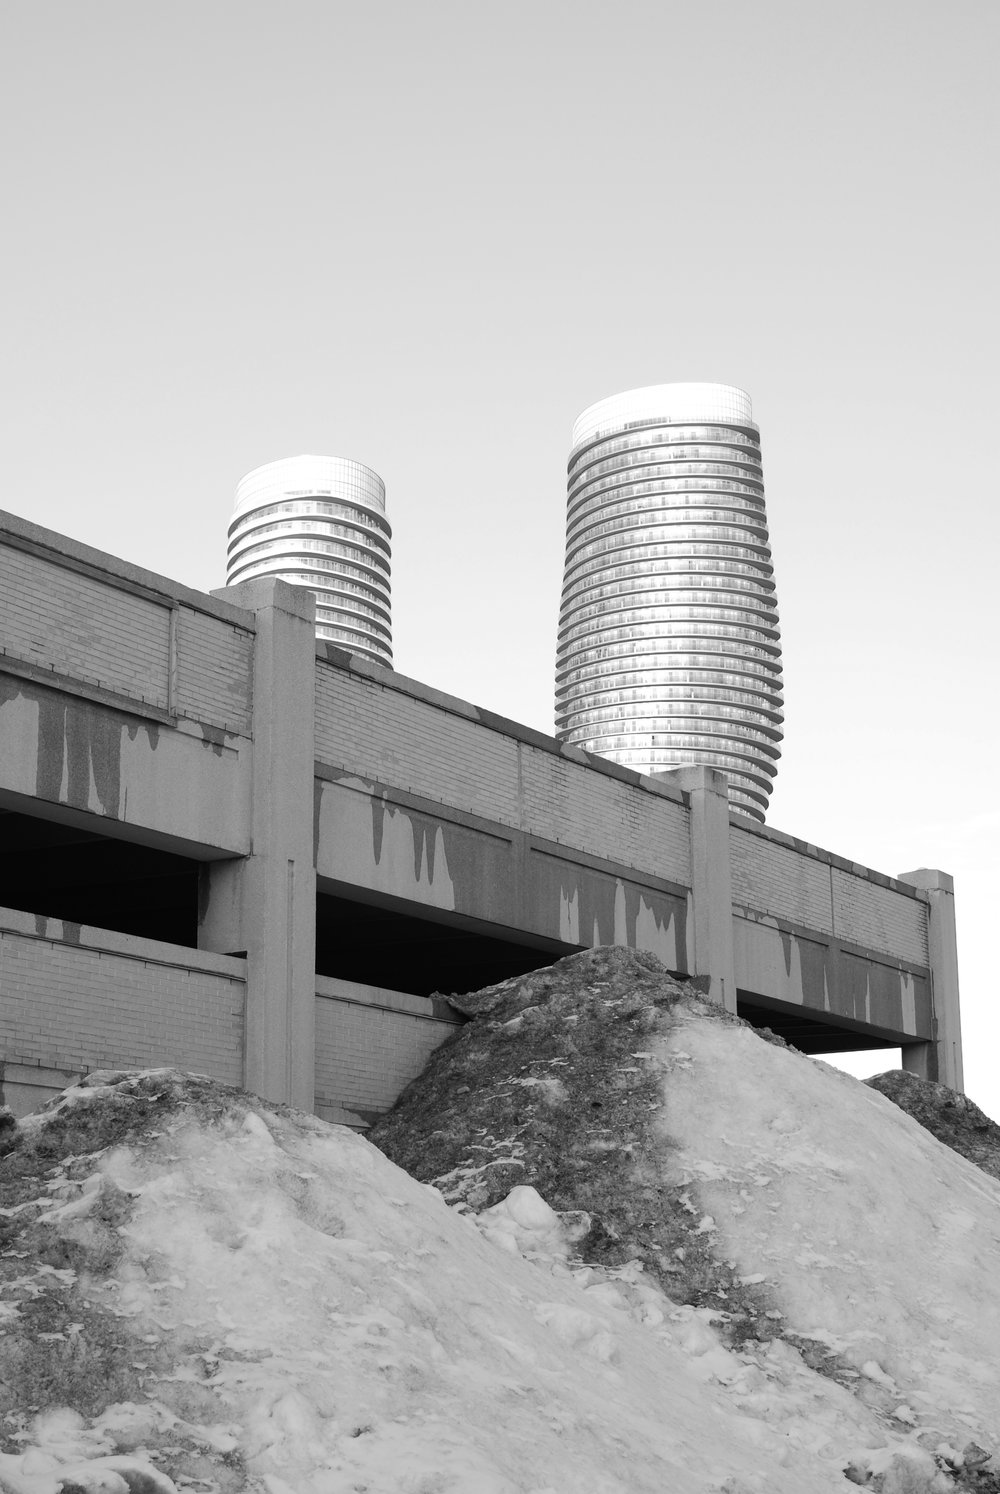 Image 9 / Parking Deck, 2014. Photograph by Roberto Damiani